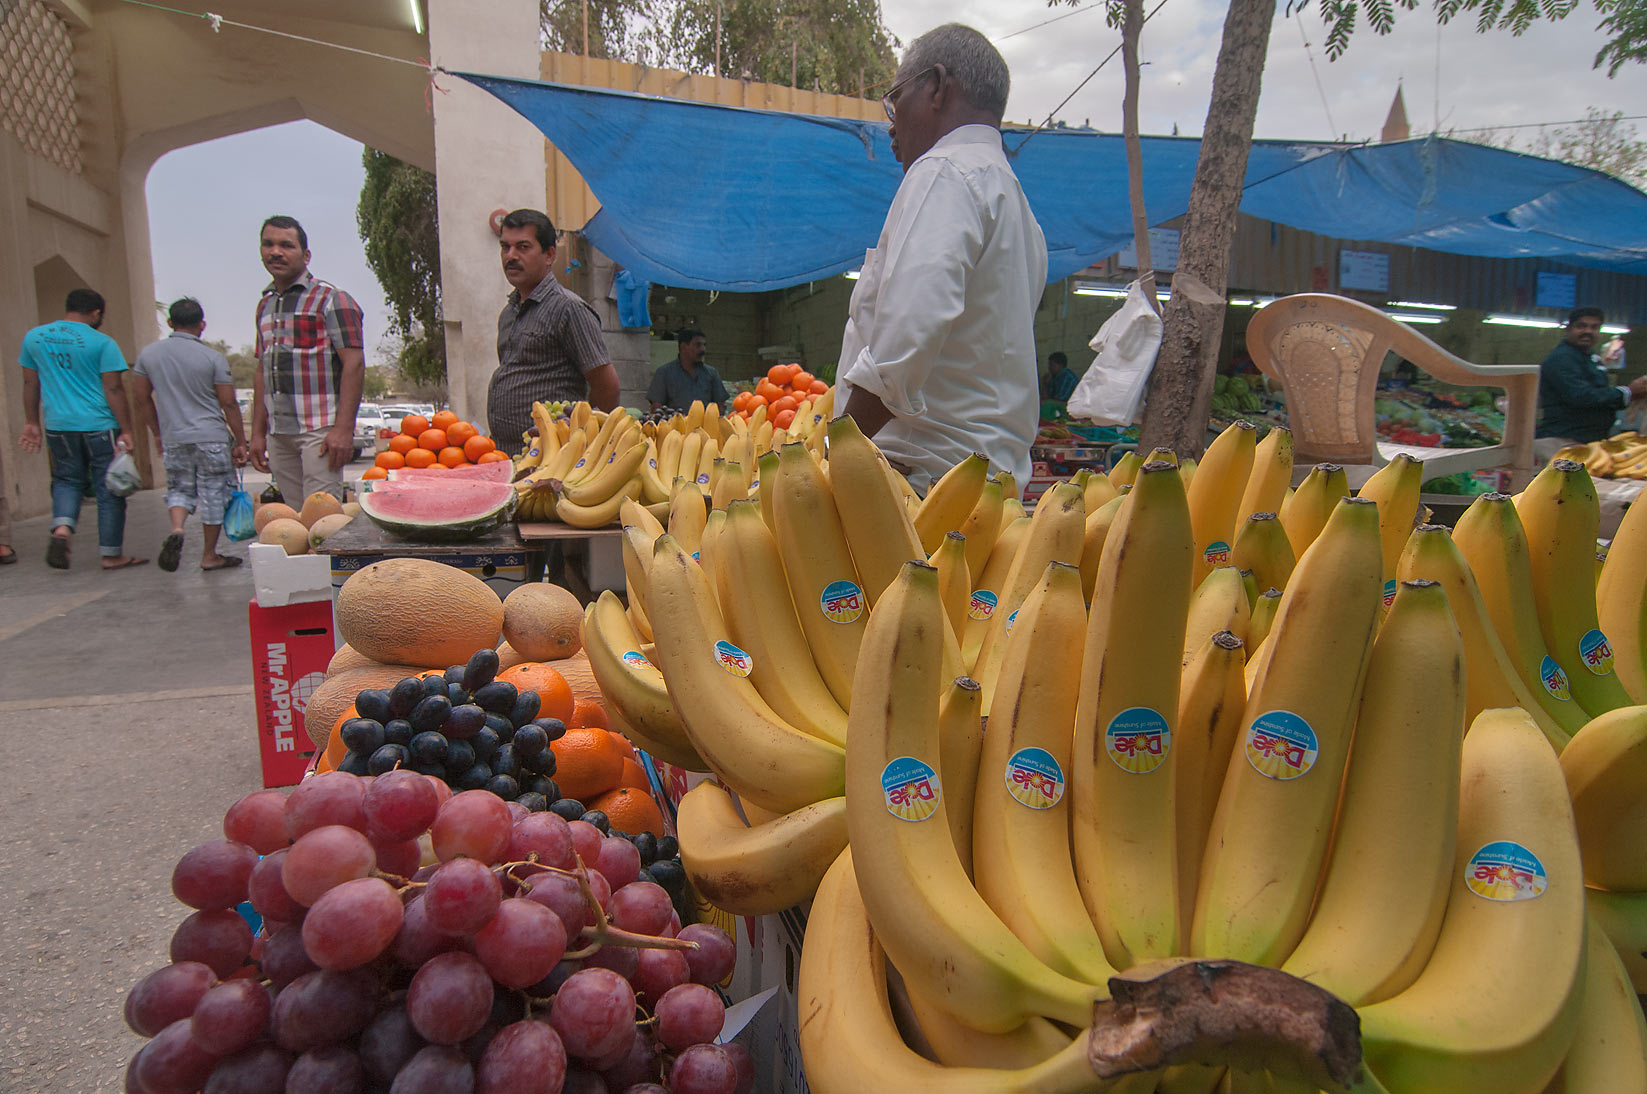 Banana in Vegetable and Fruit Market, Wholesale Markets area in Abu Hamour. Doha, Qatar